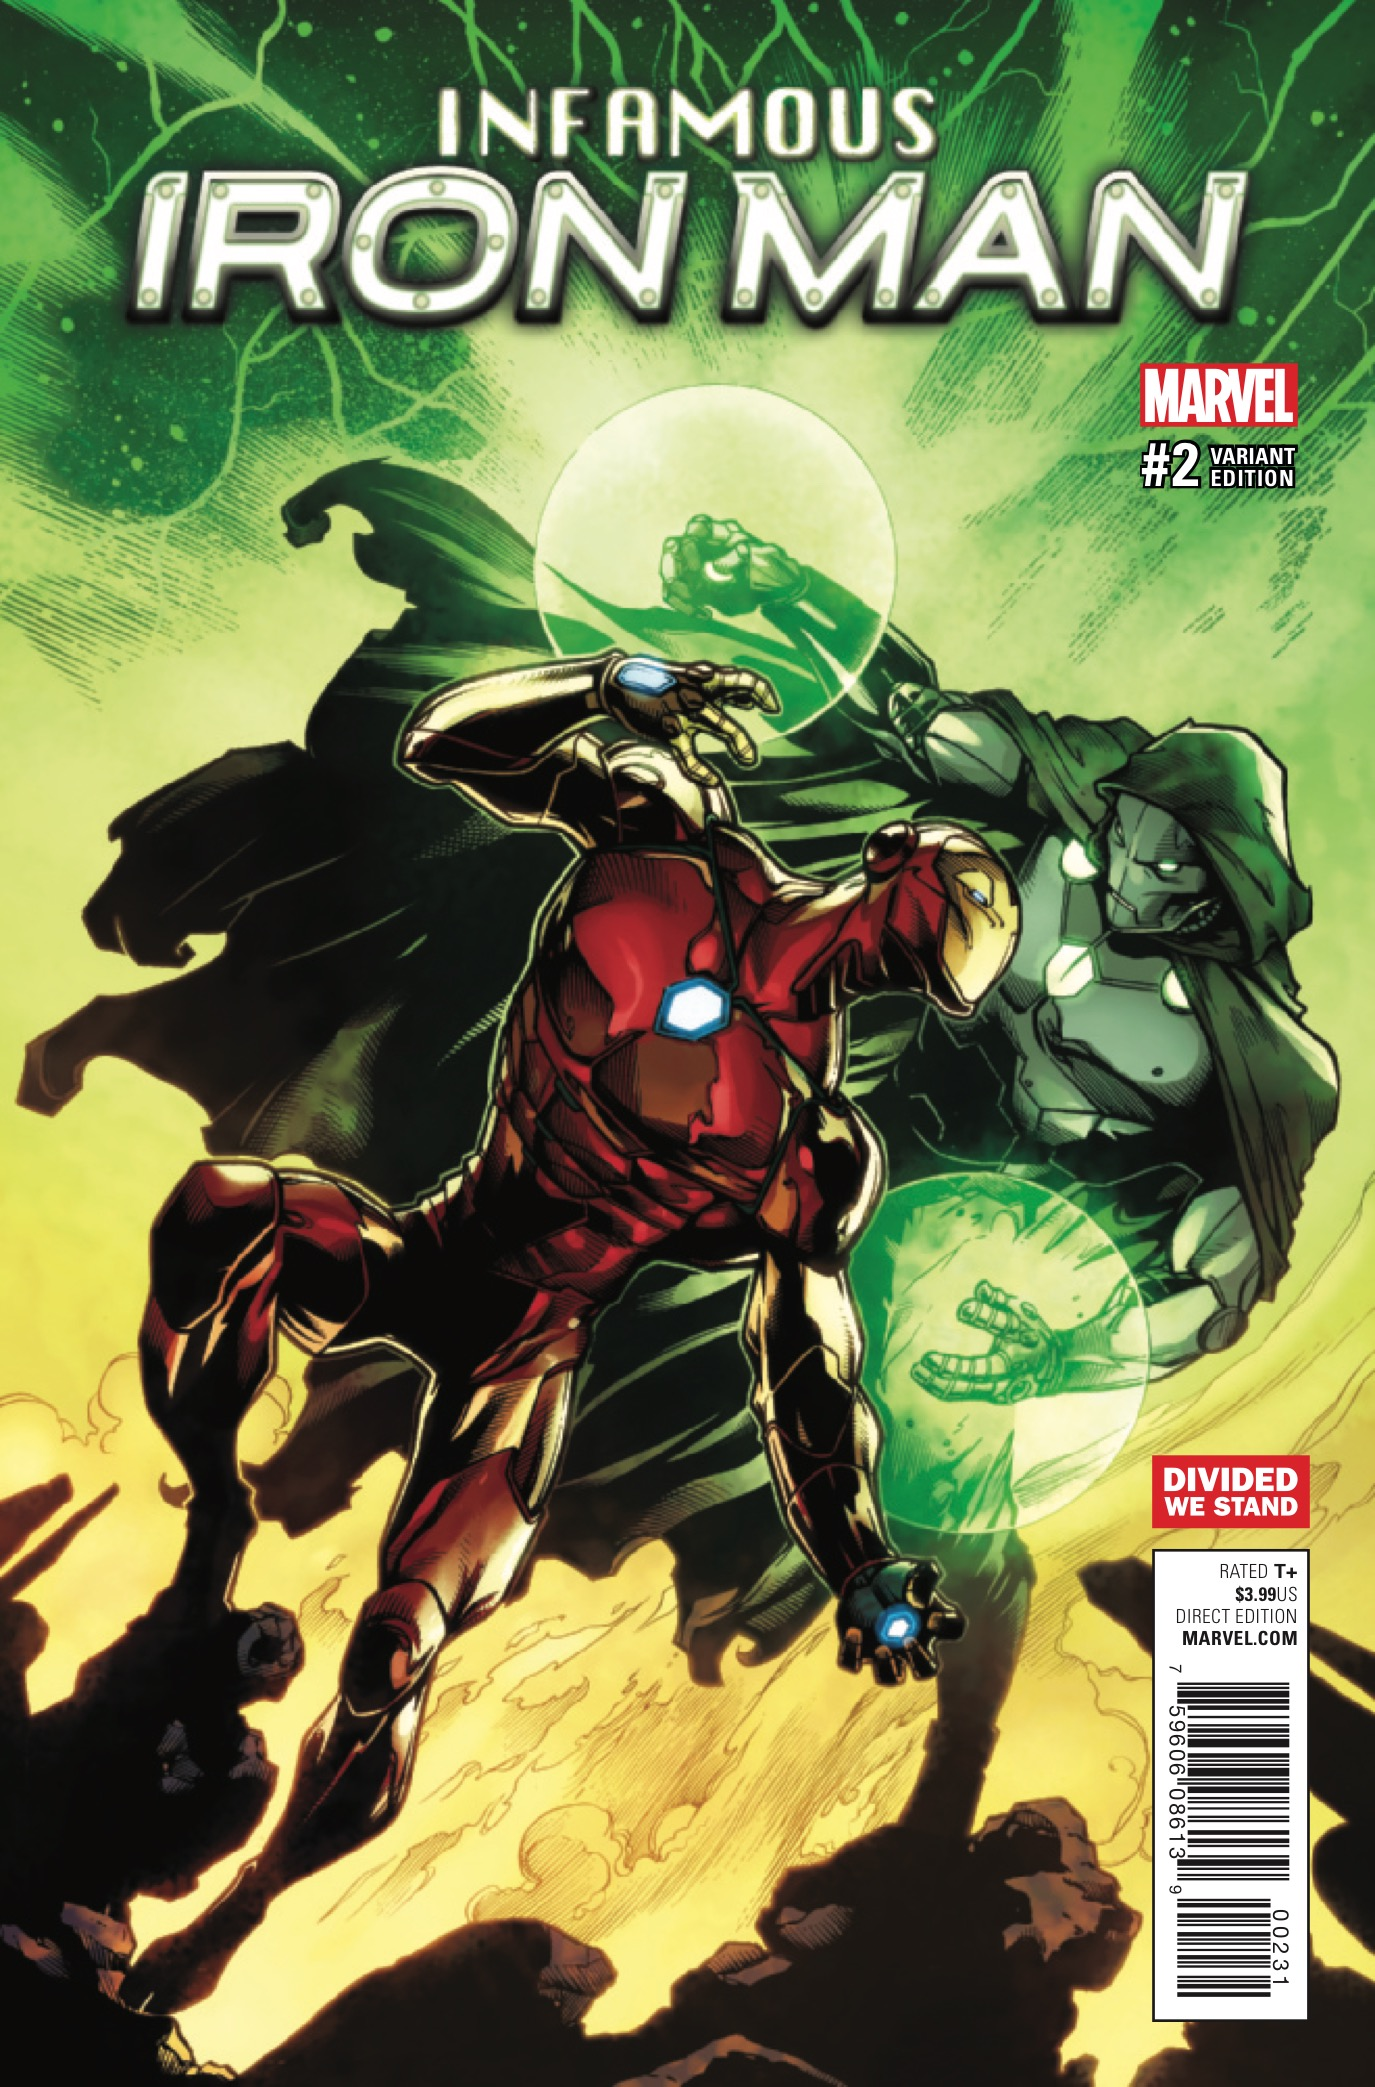 Infamous Iron Man #2 Review